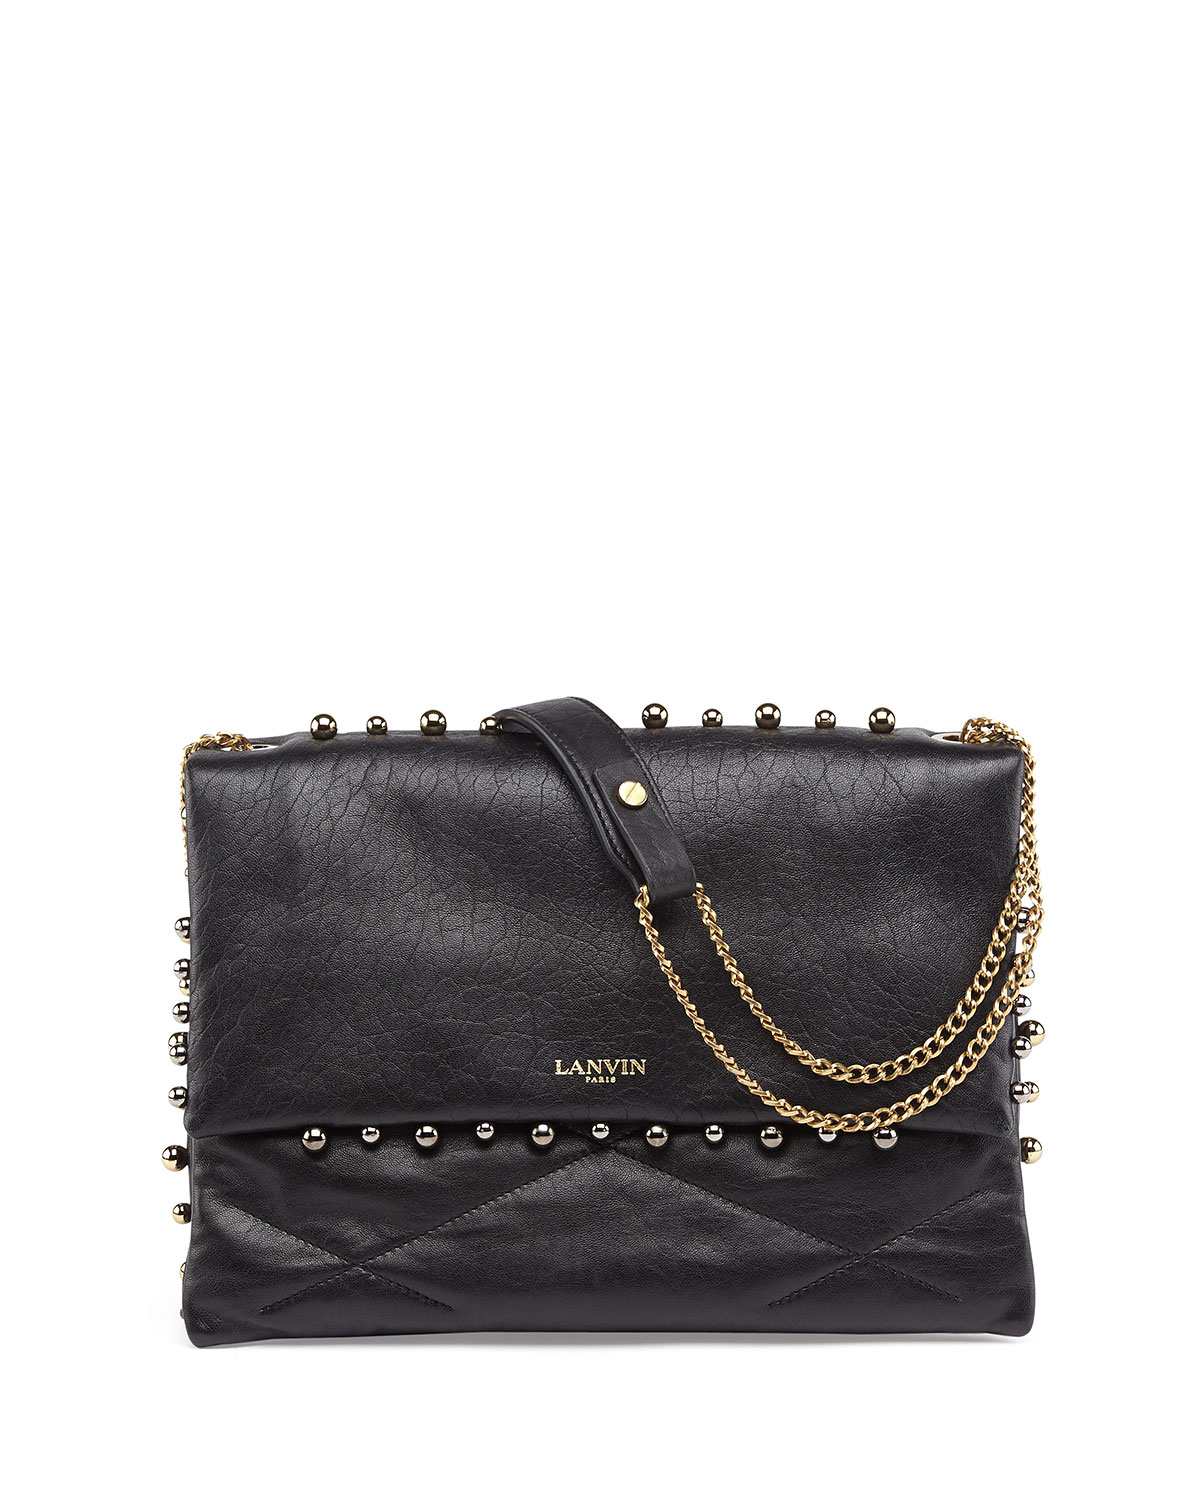 Shop black studded shoulder bag from Balenciaga, Chanel, Fendi and from truemfilesb5q.gq, Italist, Saks Fifth Avenue and many more. Find thousands of new high fashion items in one place.